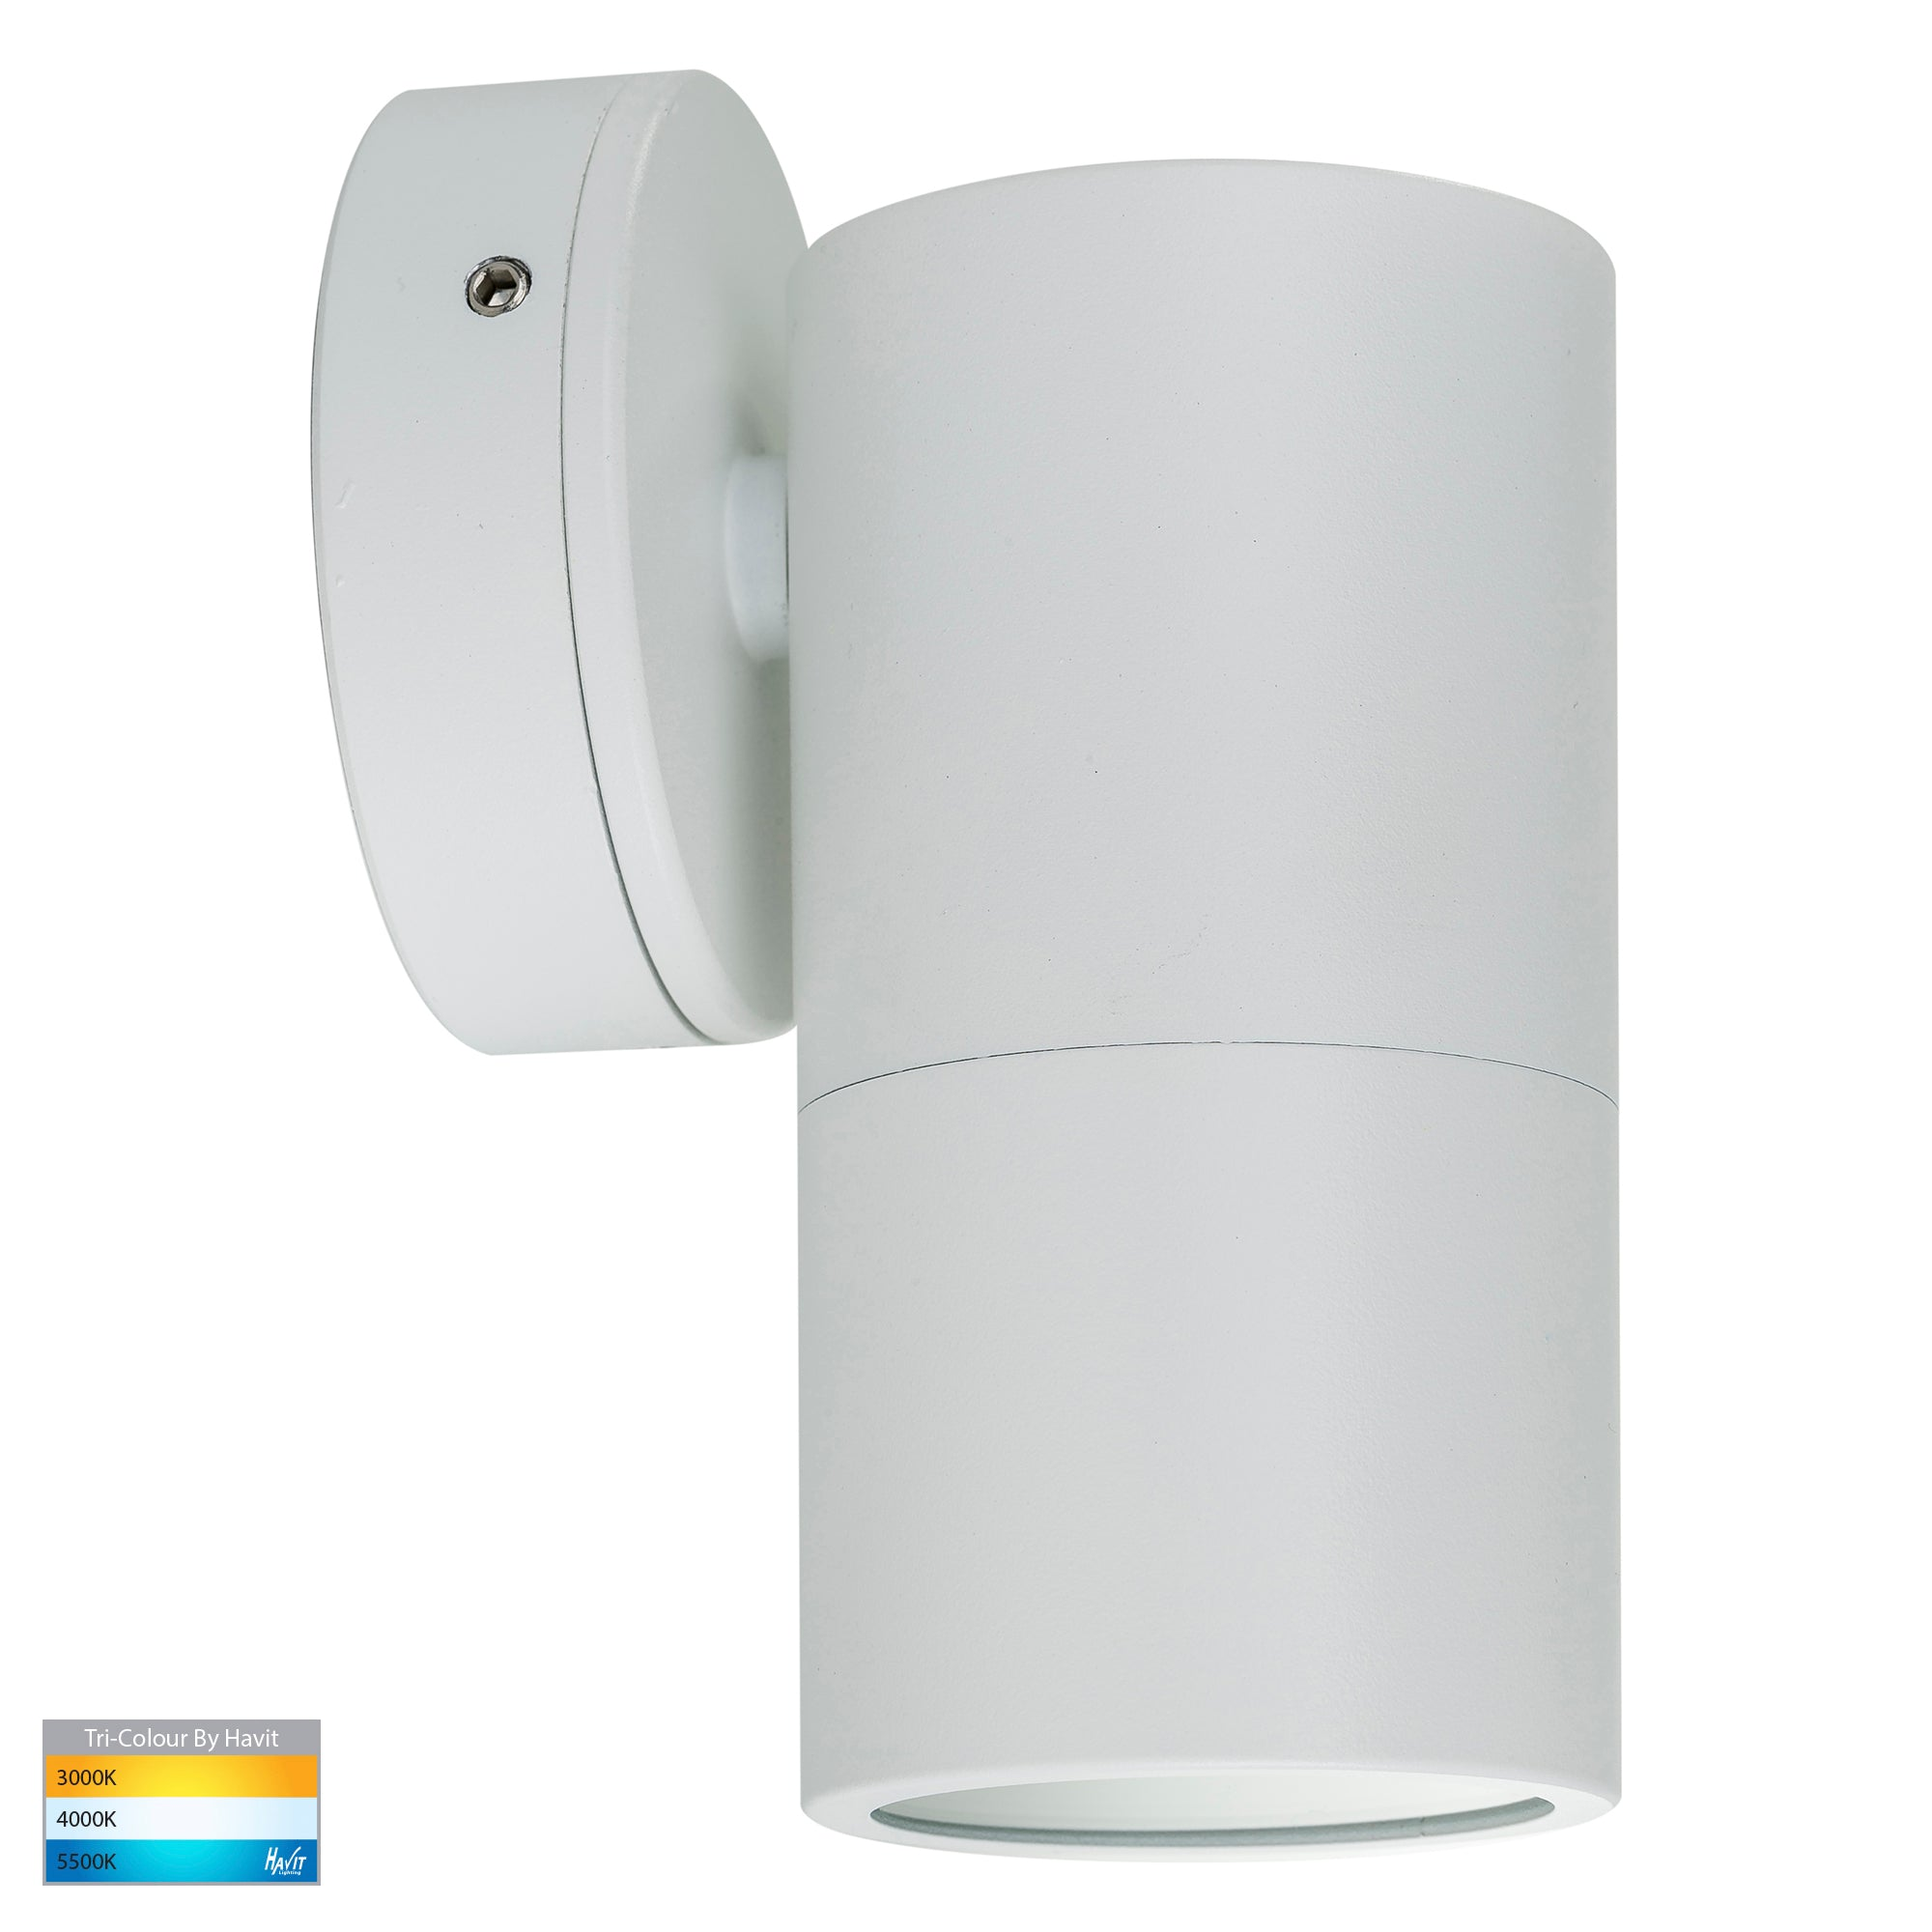 HV1135T-HV1137T - Tivah White TRI Colour Fixed Down Wall Pillar Lights